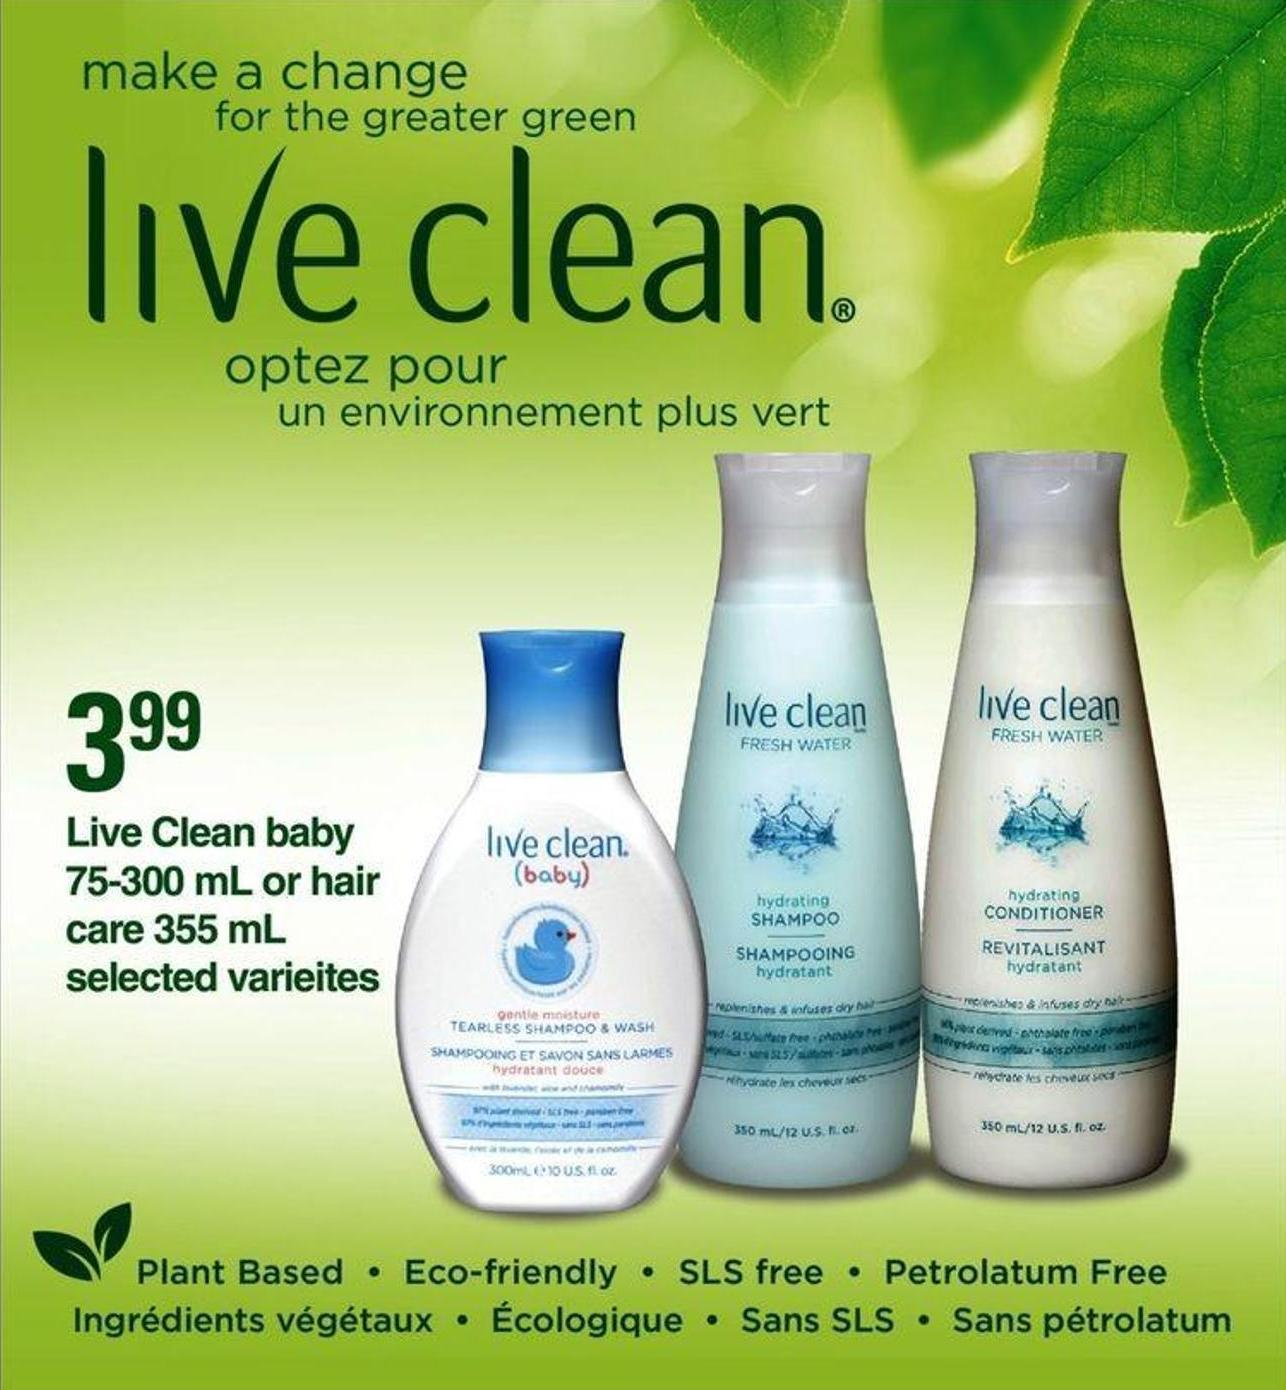 Live Clean Baby - 75-300 mL Or Hair Care - 355 mL